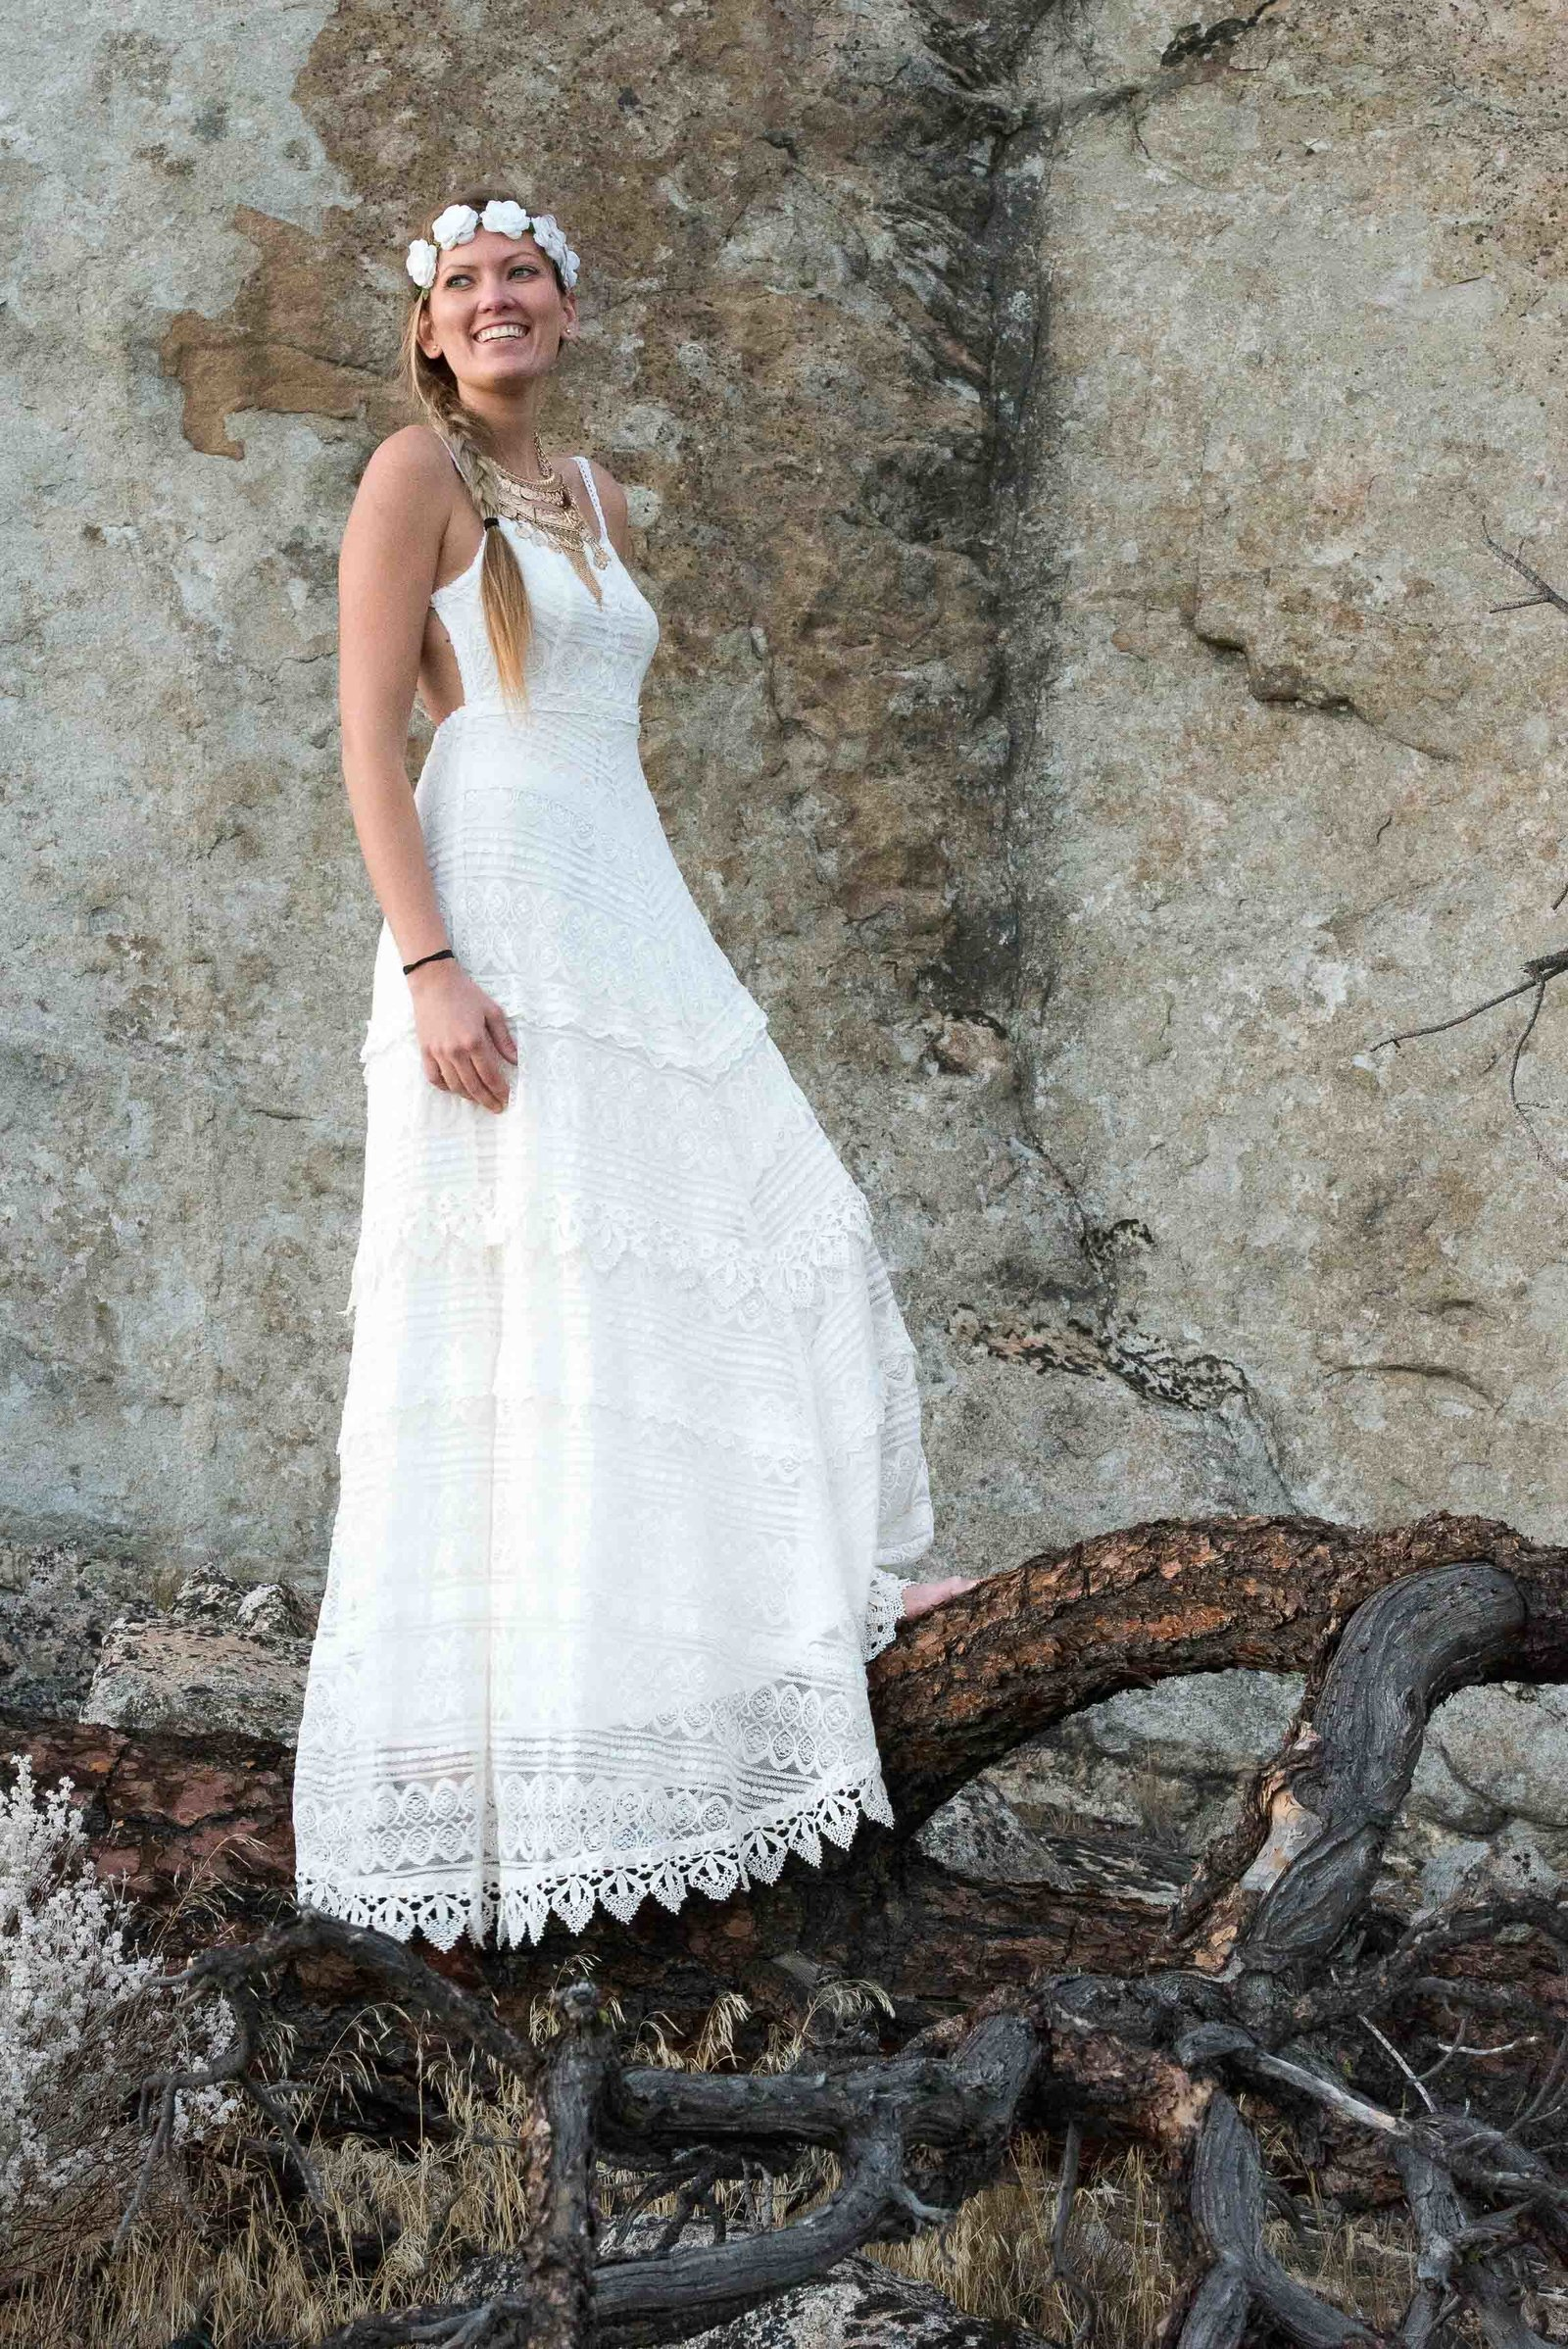 Boho wedding dress ideas for an active adventure wedding